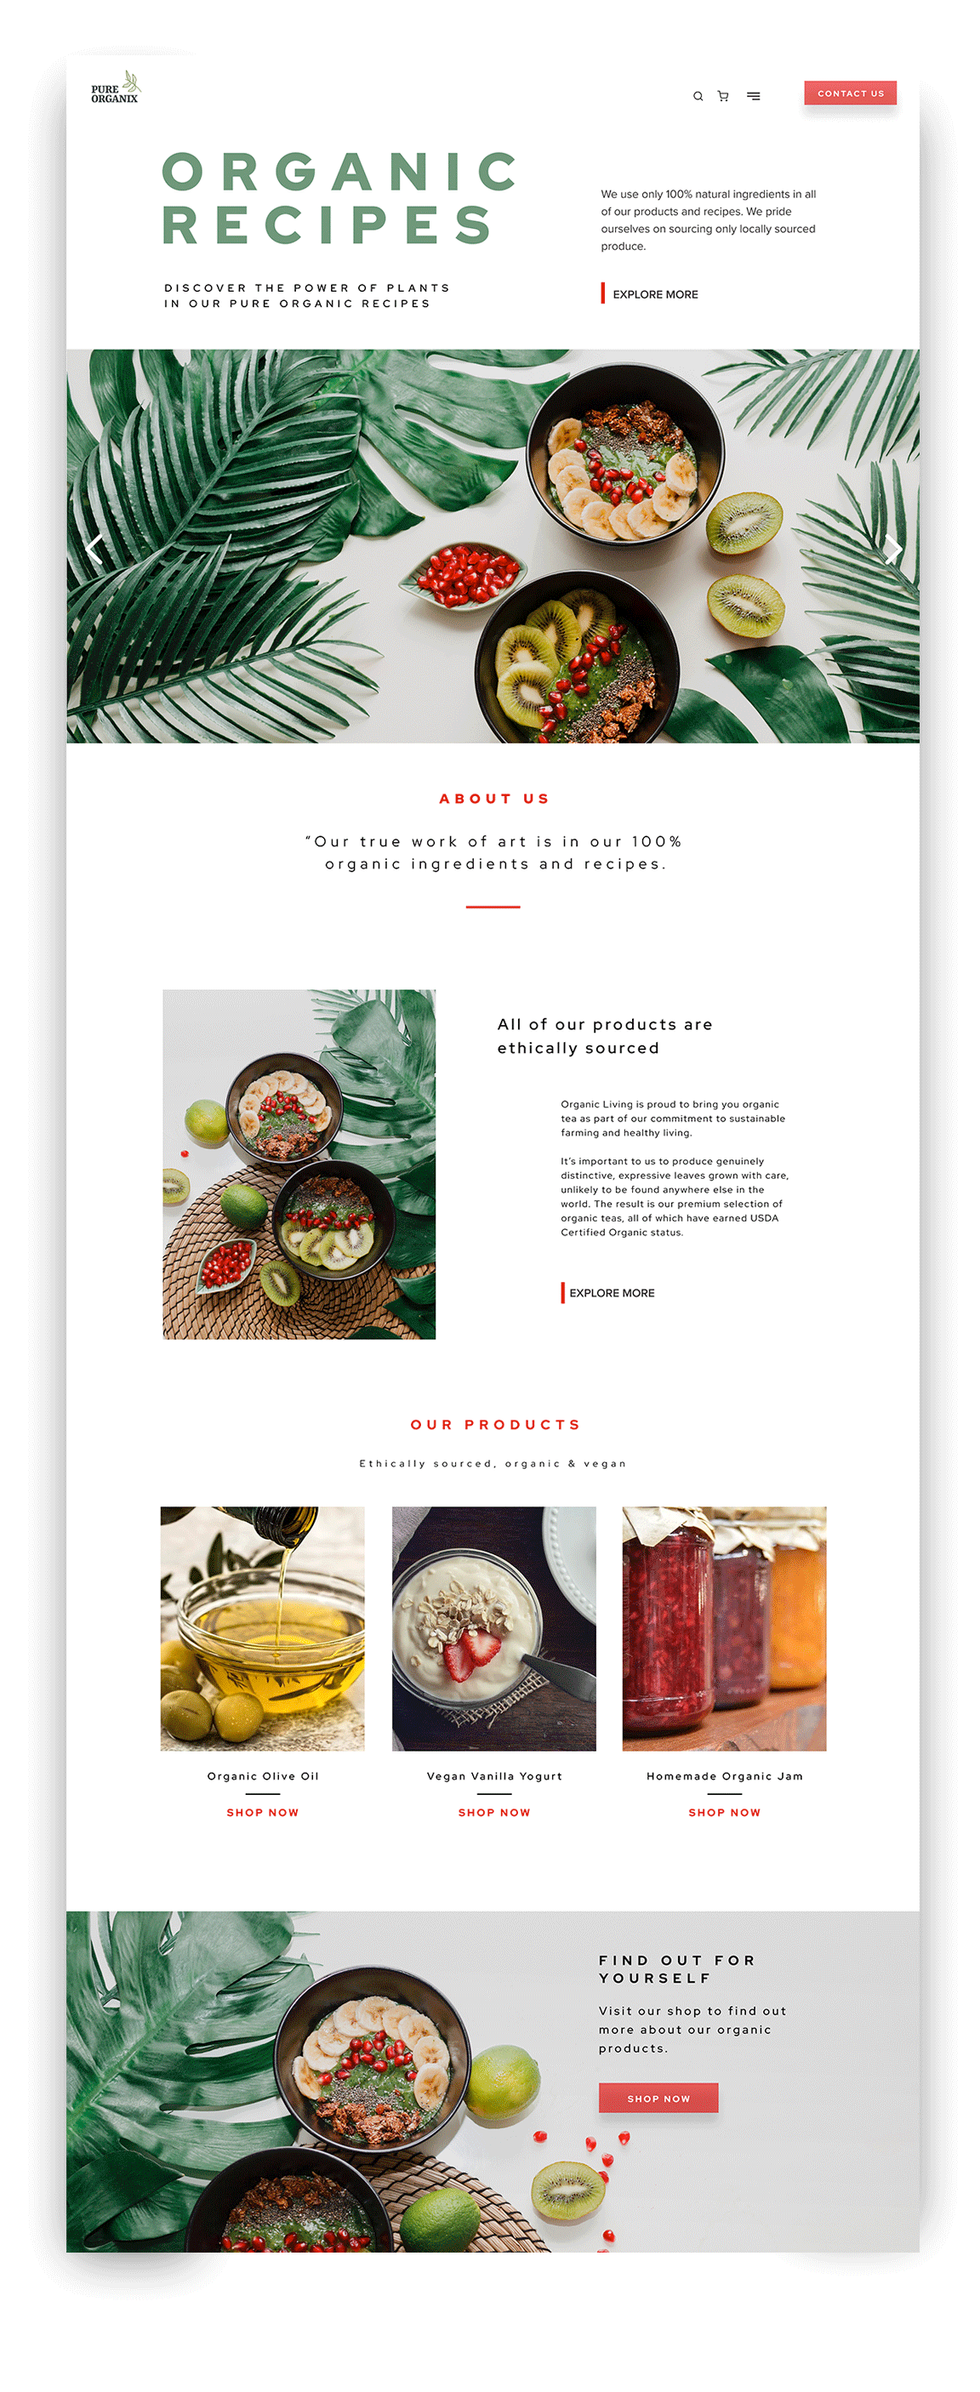 organic-recipes-page.png